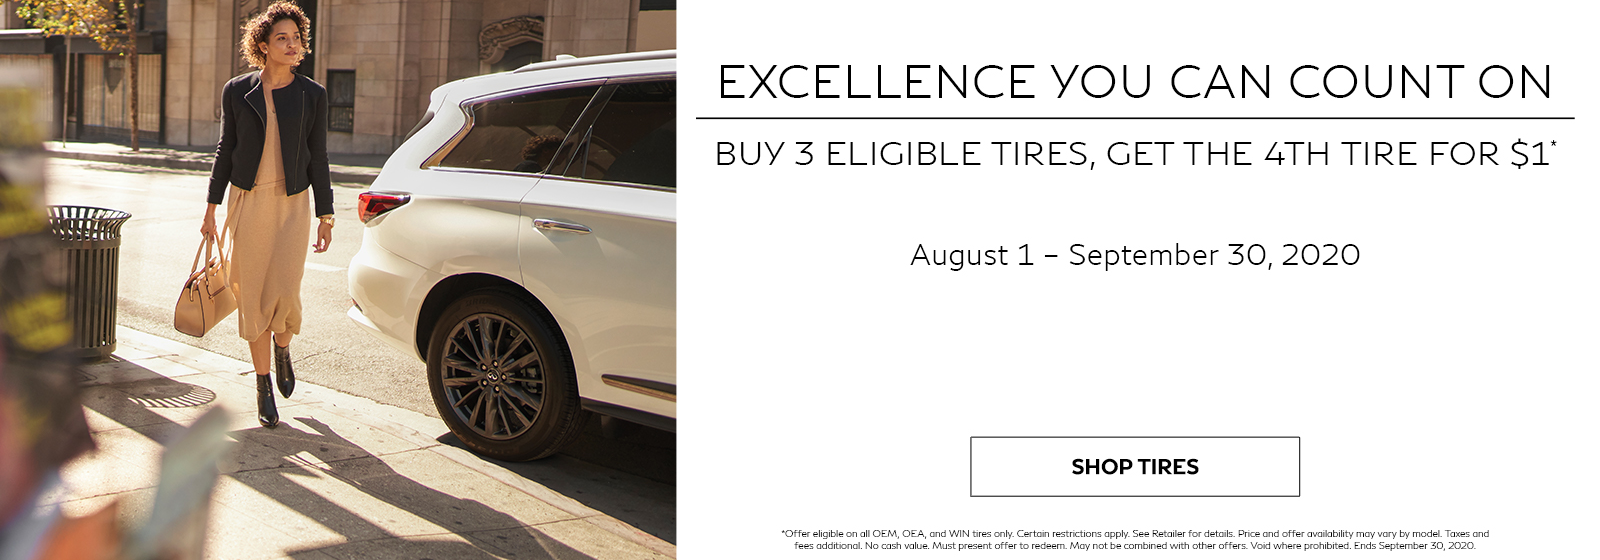 Buy 3 tires get the 4th tire for $1. Restrictions may apply. See retailer for complete details. Offer runs from August 1 through September 30.